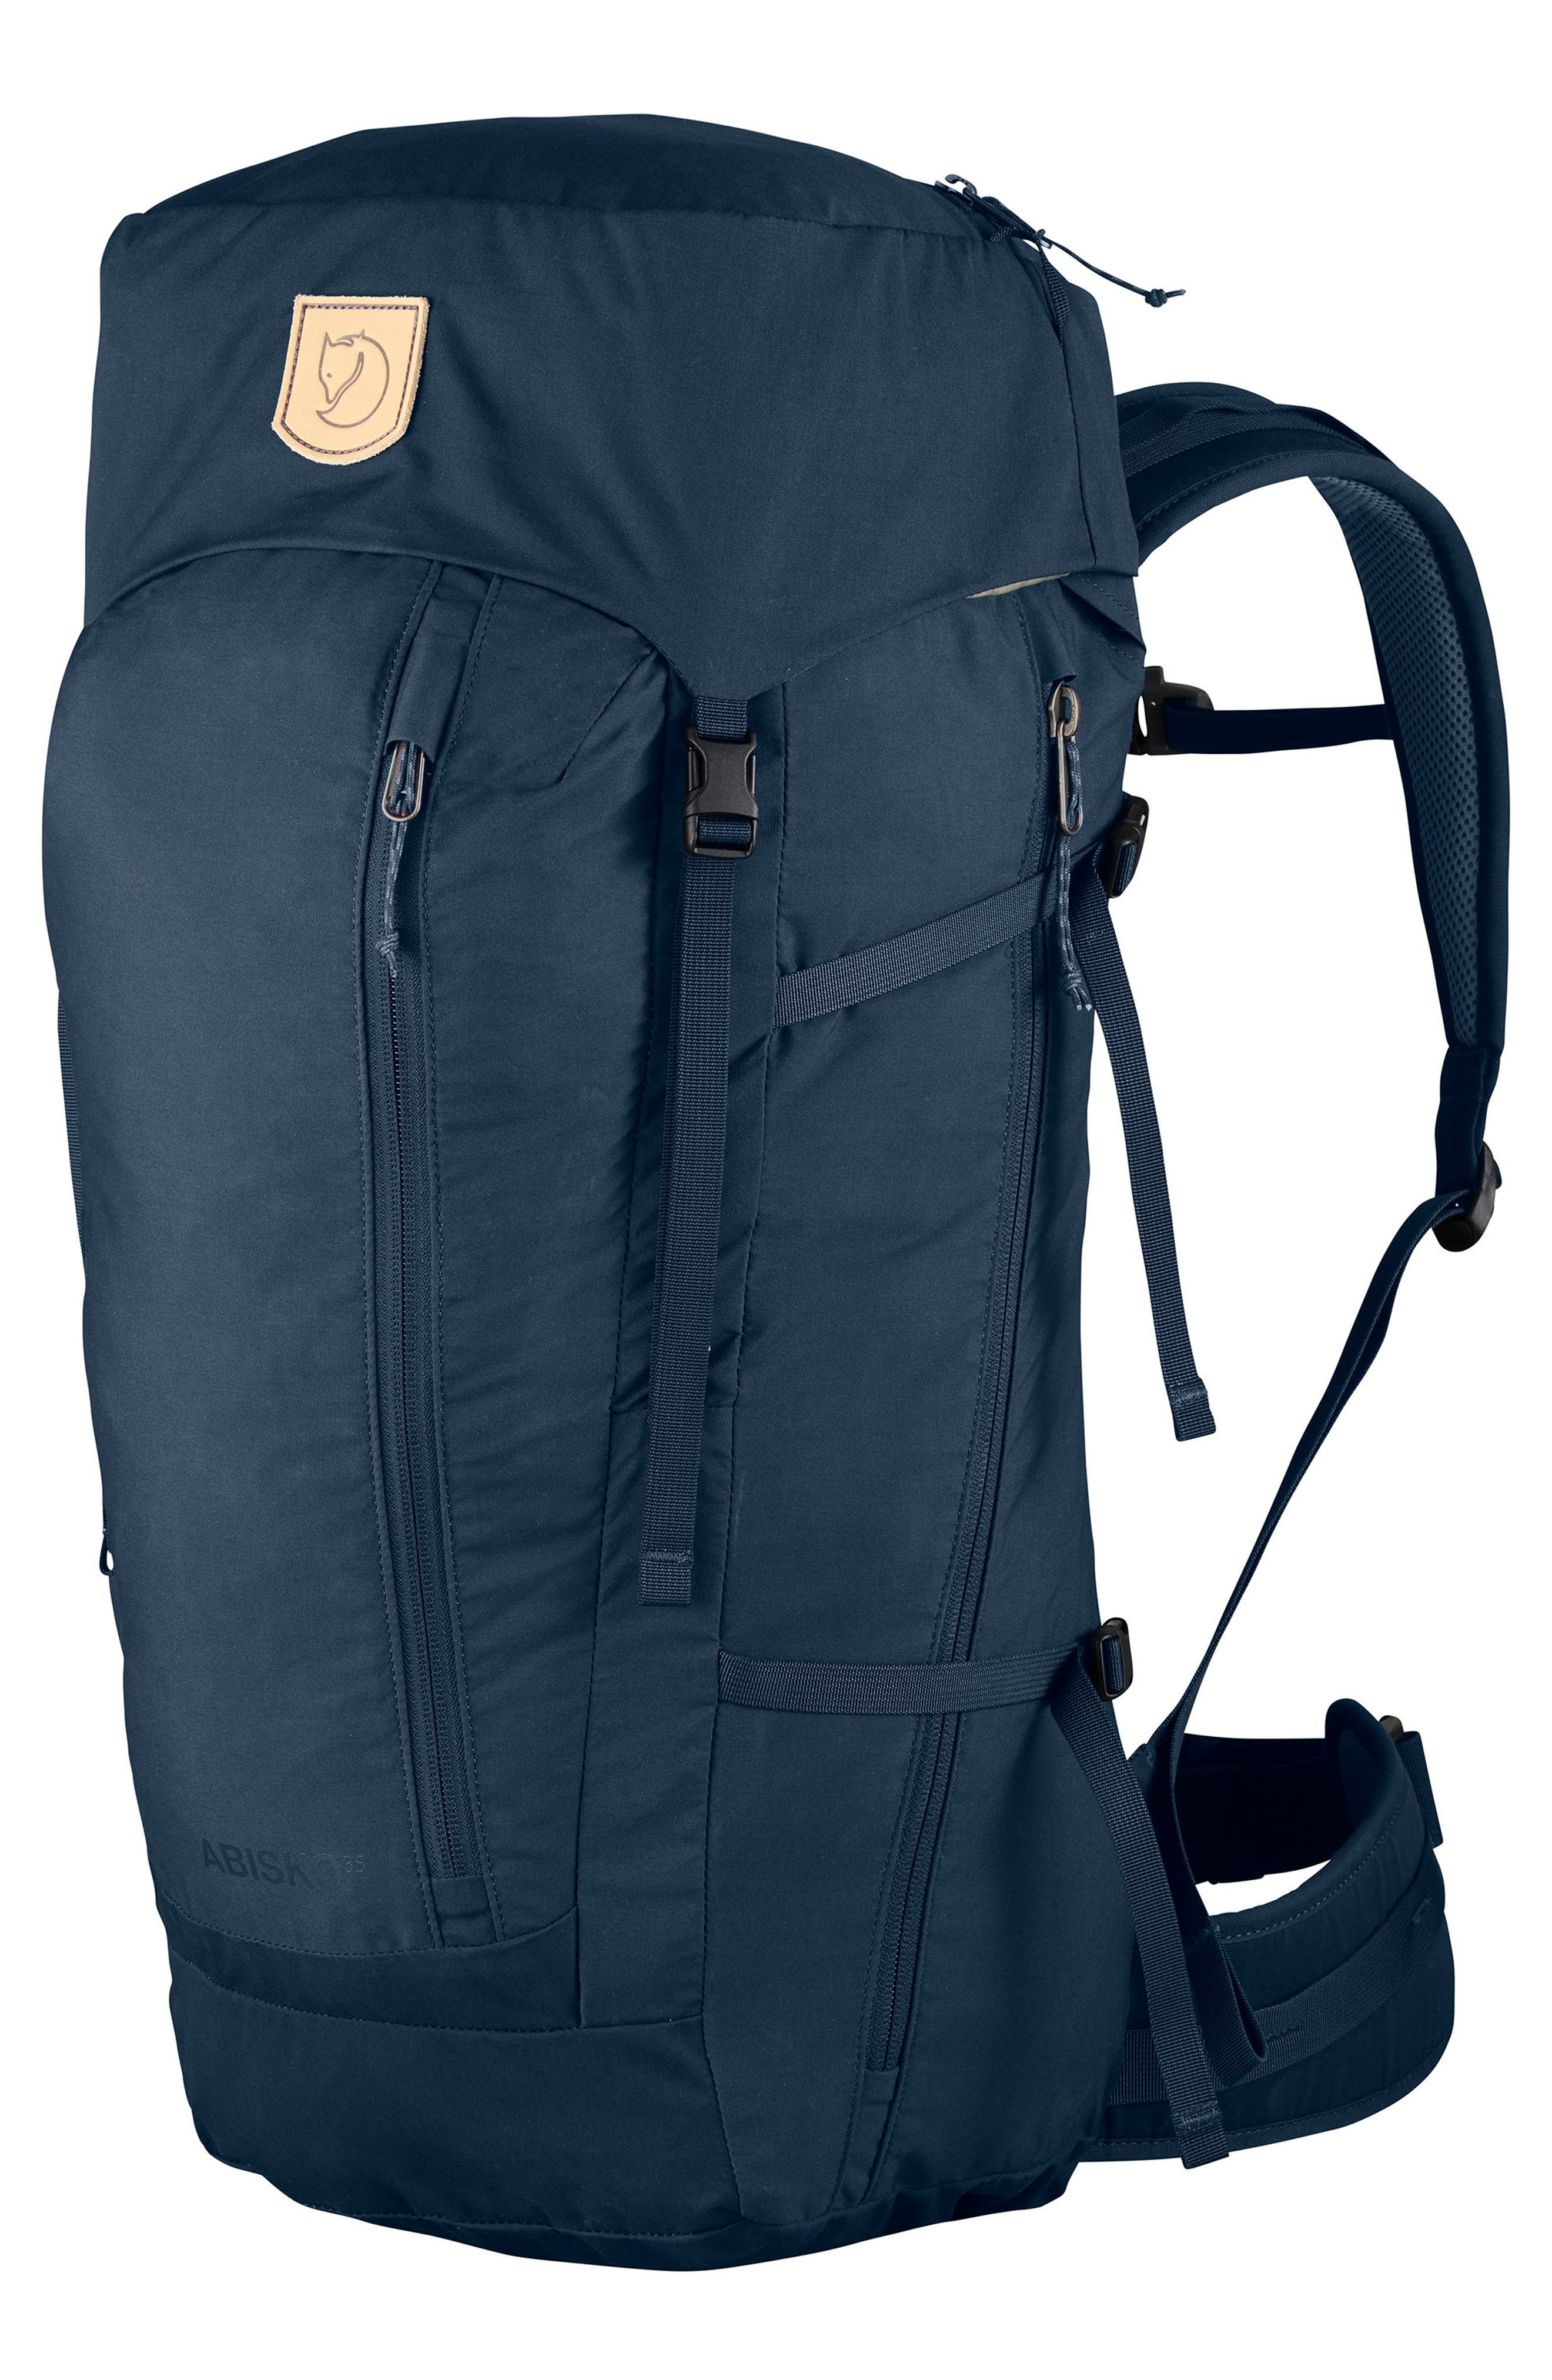 Abisko 35 Hiking Backpack,                         Main,                         color, NAVY